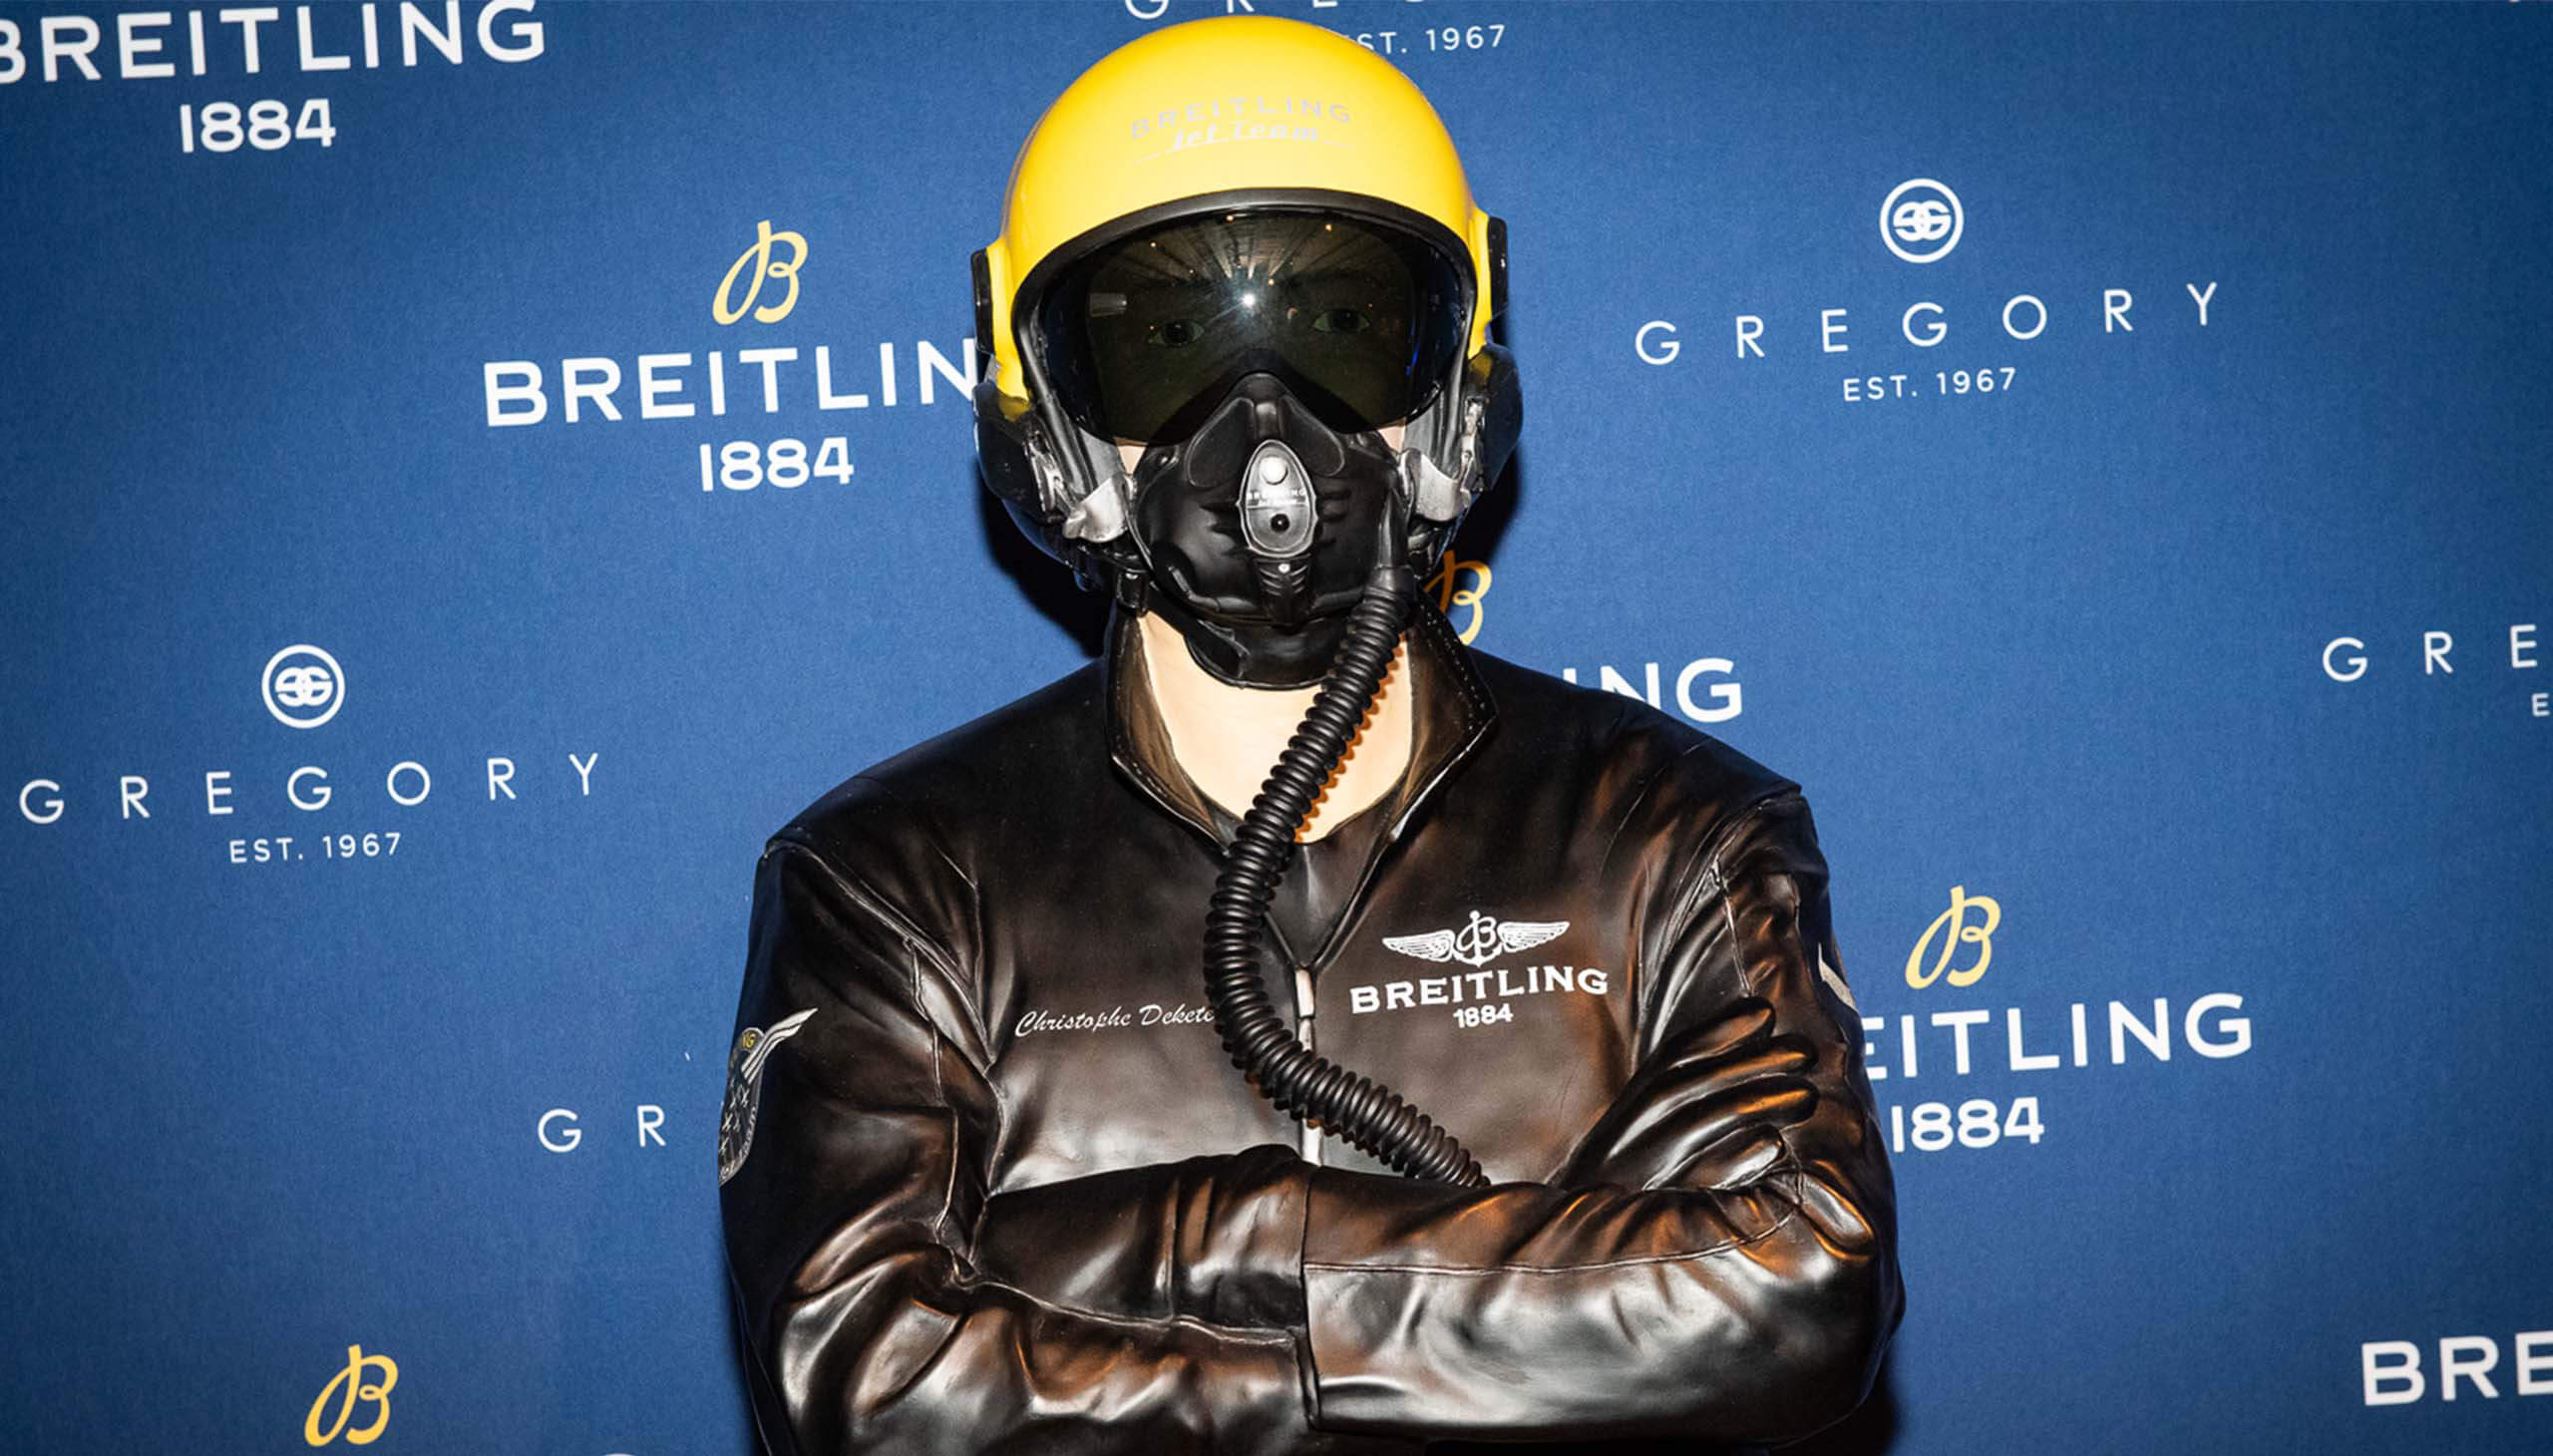 Fighter pilot in helmet, goggles and mask at Breitling event